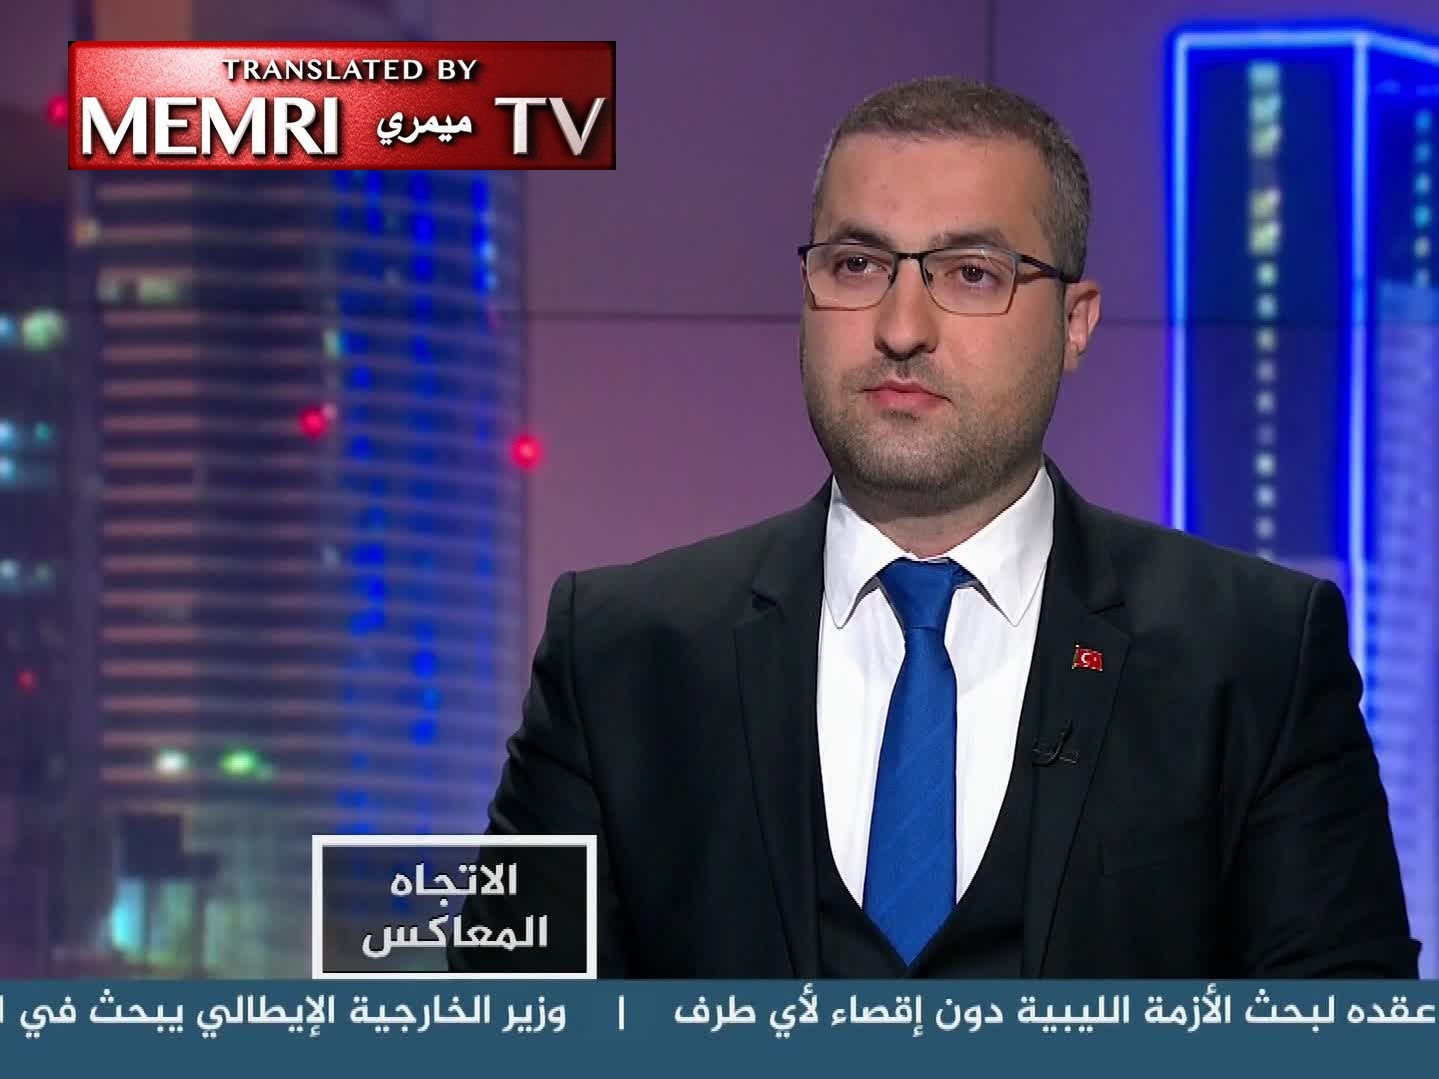 Turkish Journalist Hamza Tekin: Turkey Will Send Soldiers and Equipment That Will Tip the Scales in Libya in Favor of the Government of National Accord